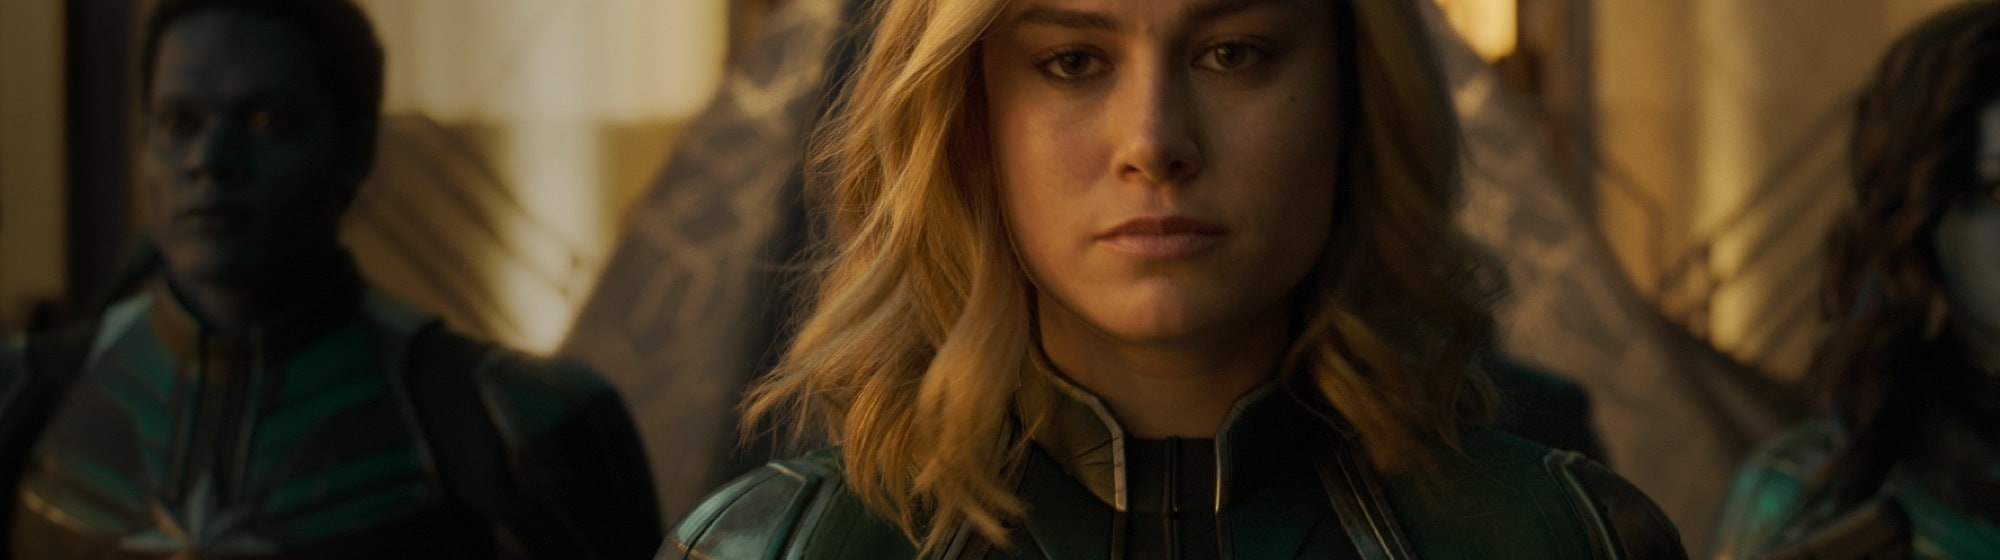 Explore Captain Marvel